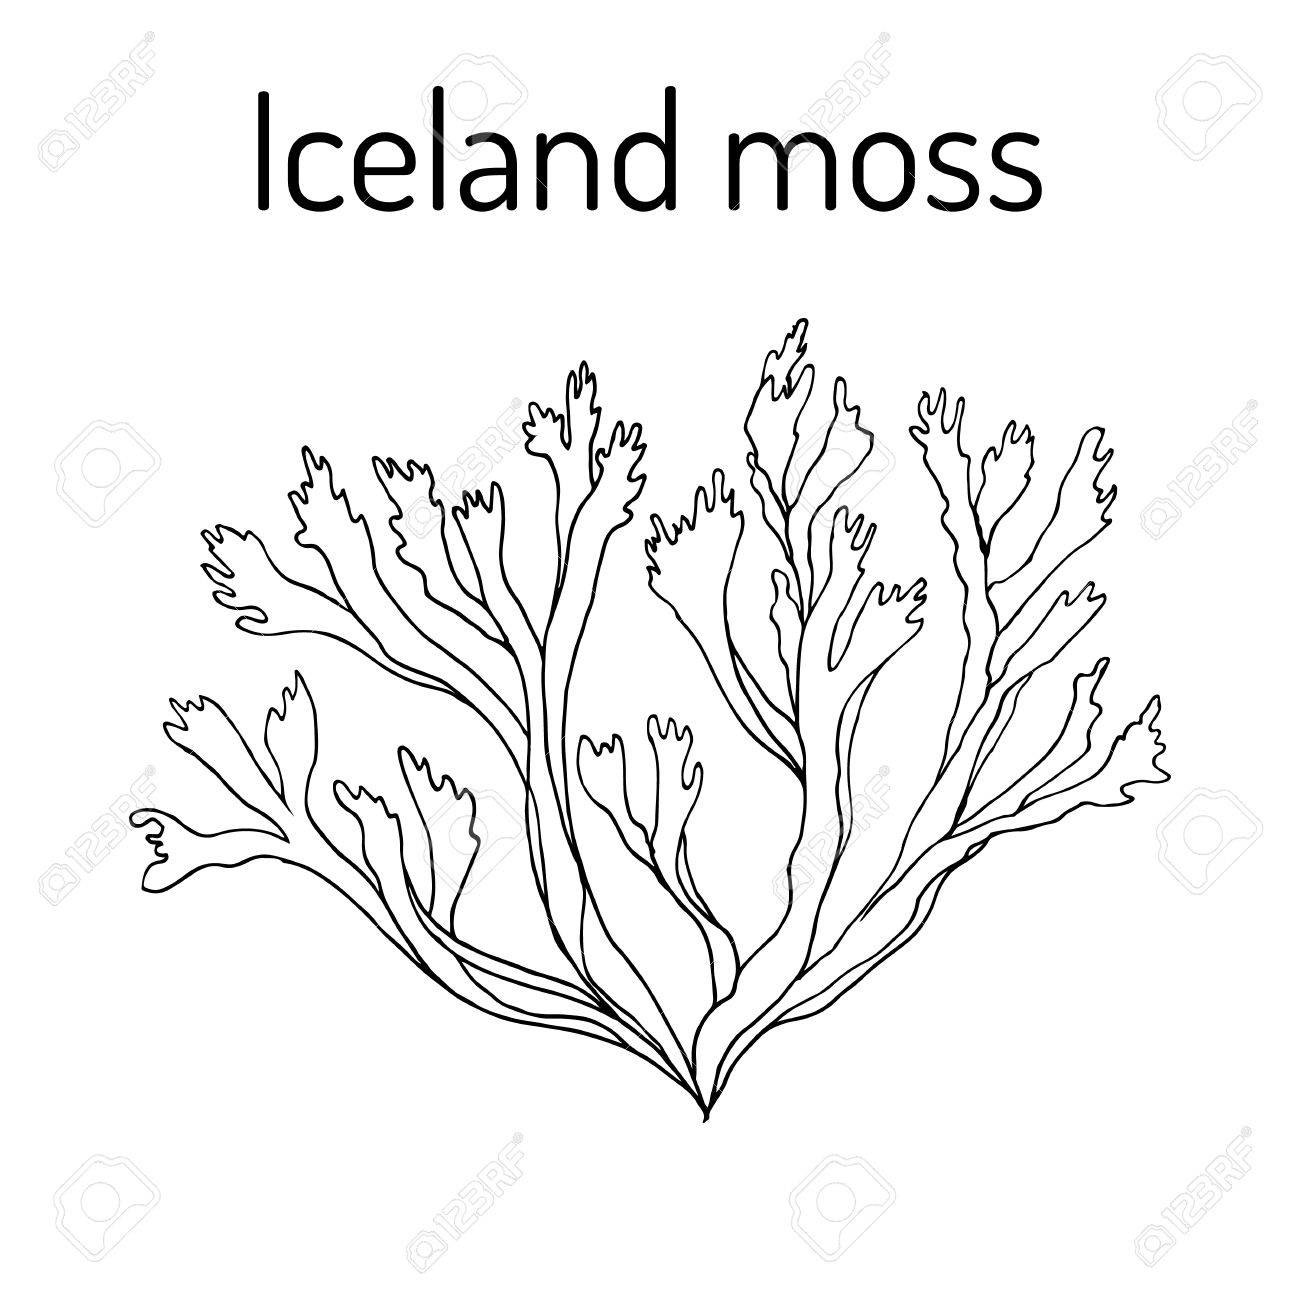 Sketch-of-Iceland-moss